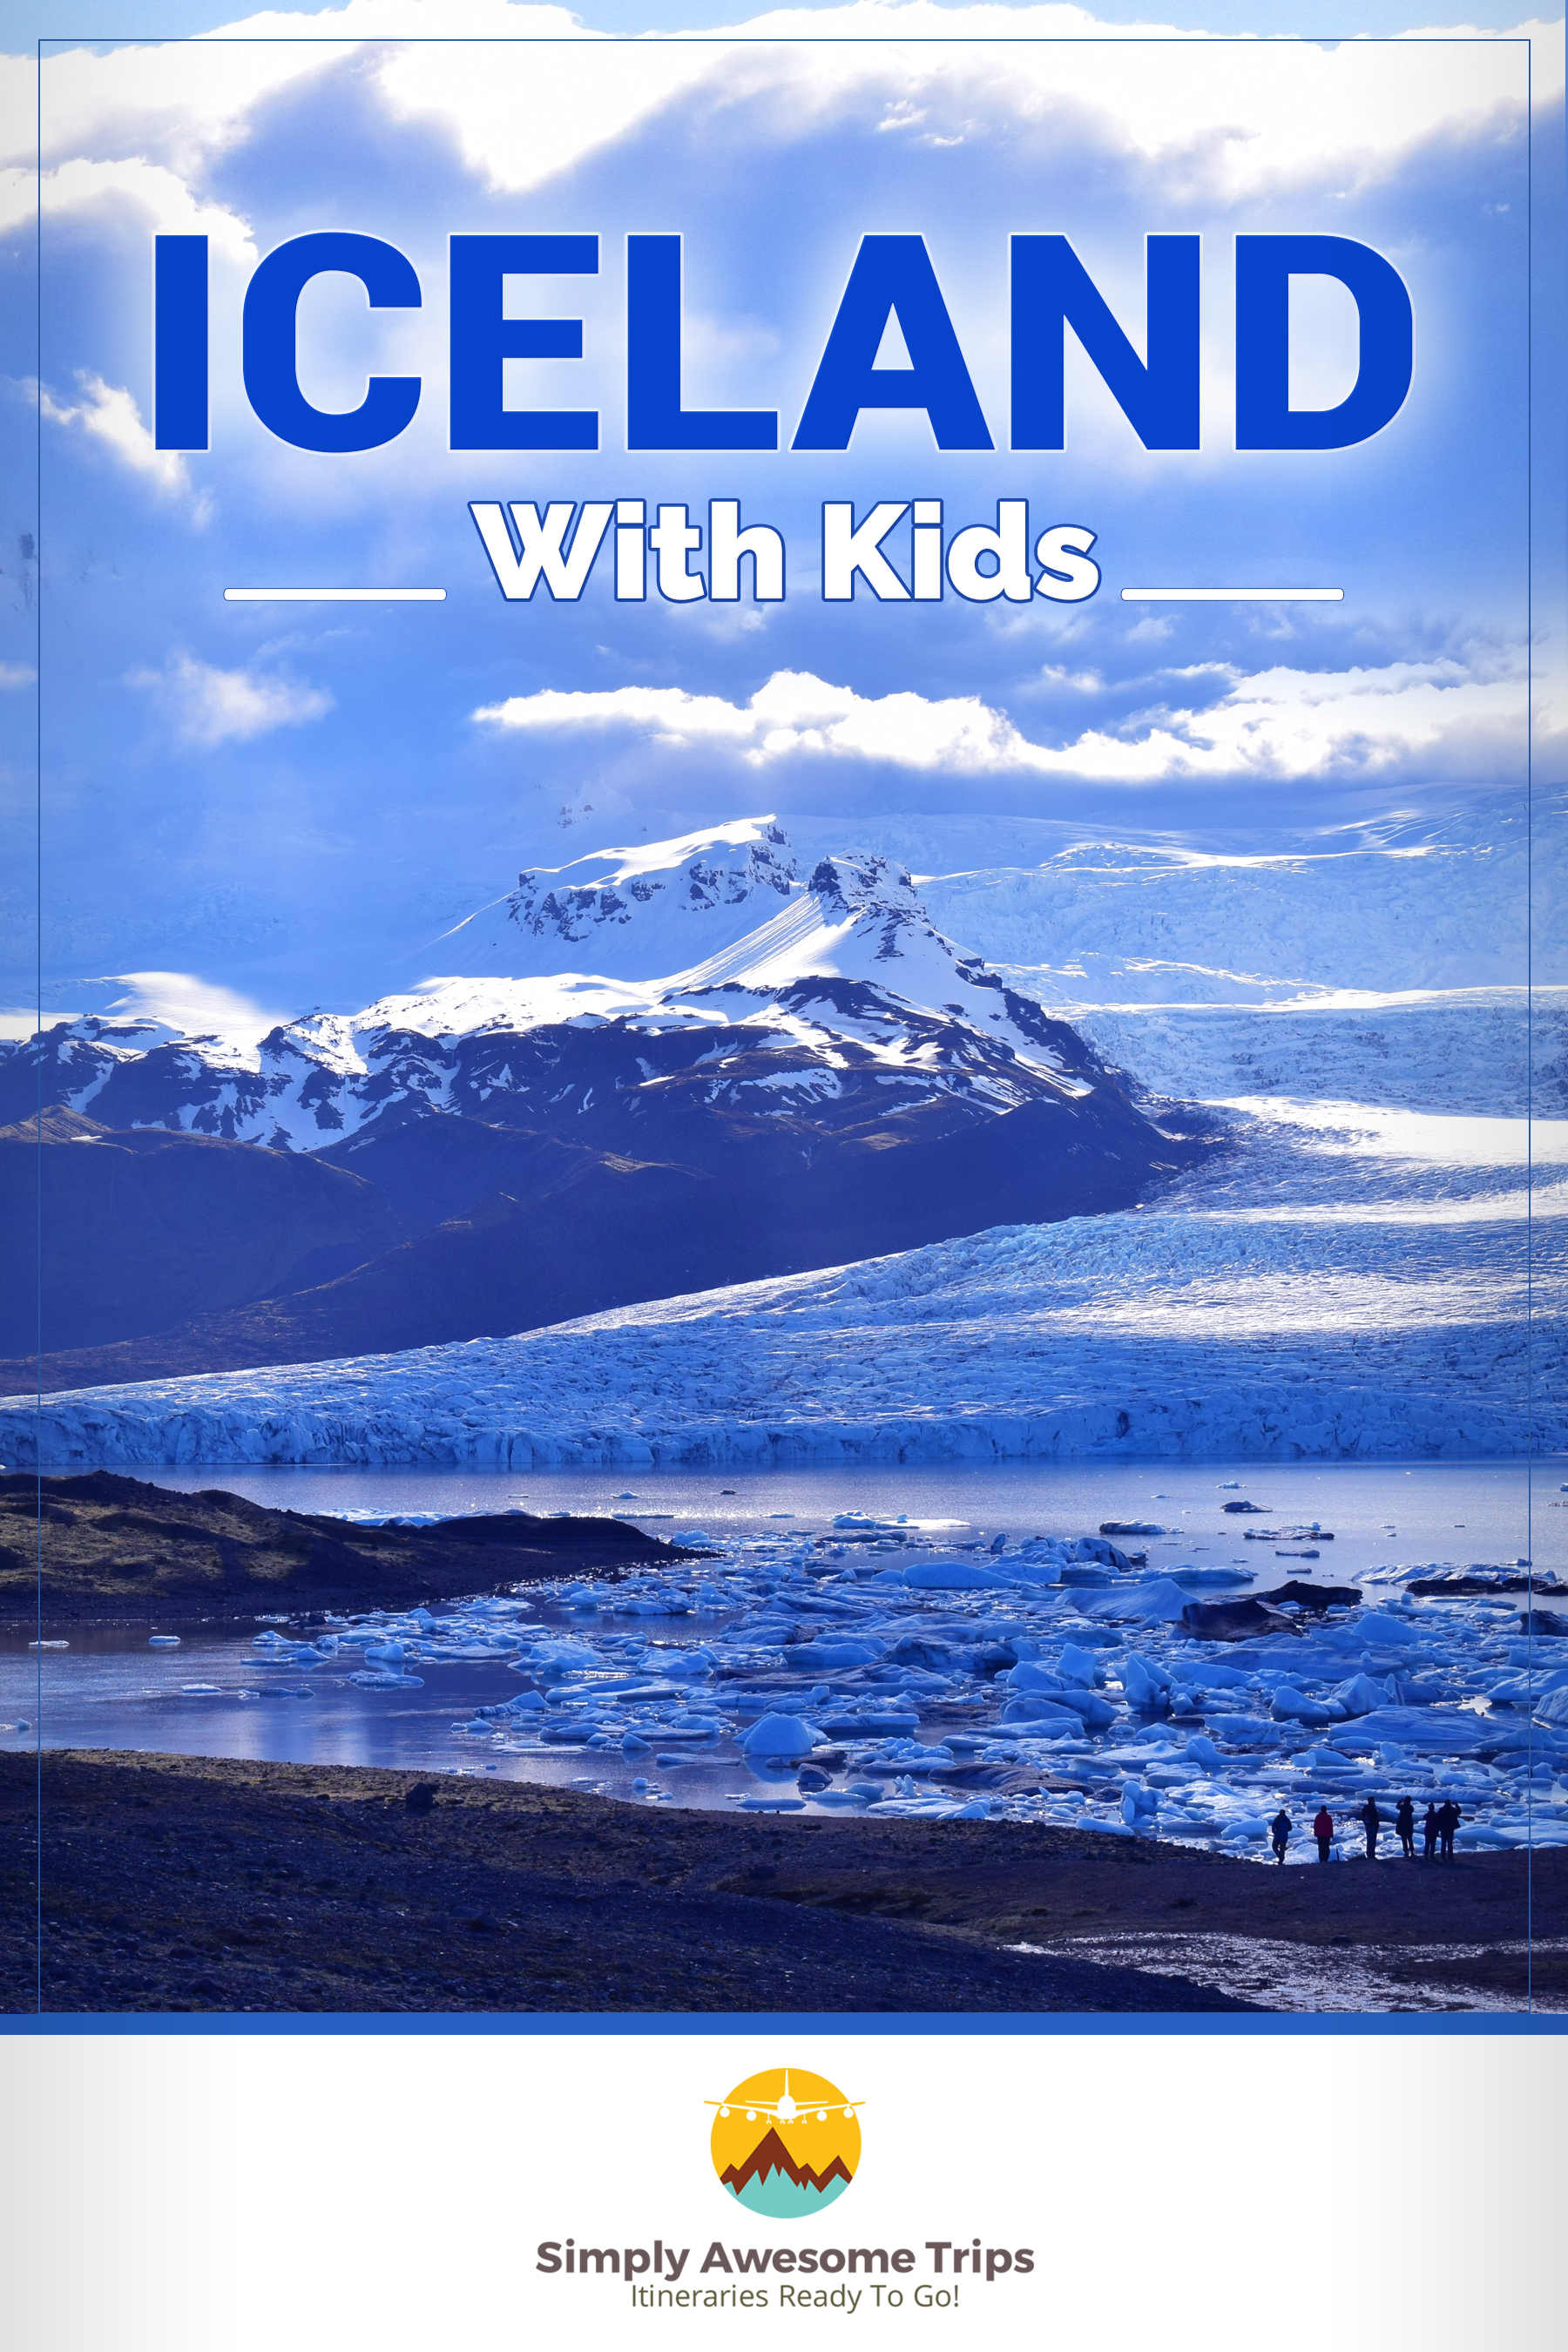 Iceland With Kids Cover.jpg